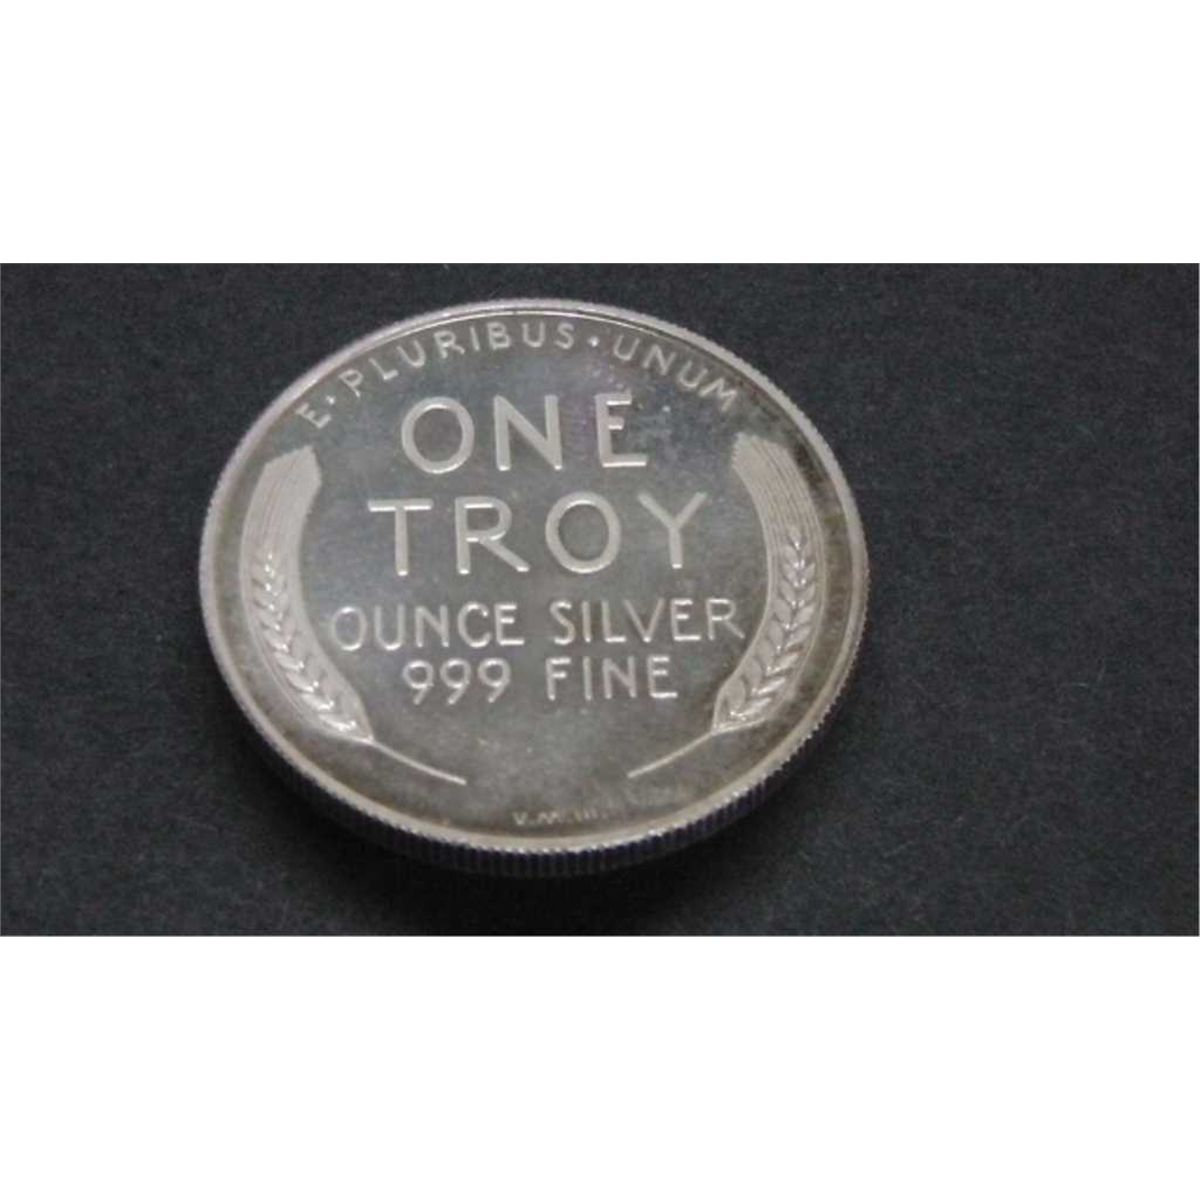 1987 One Troy Ounce Of 999 Fine Silver